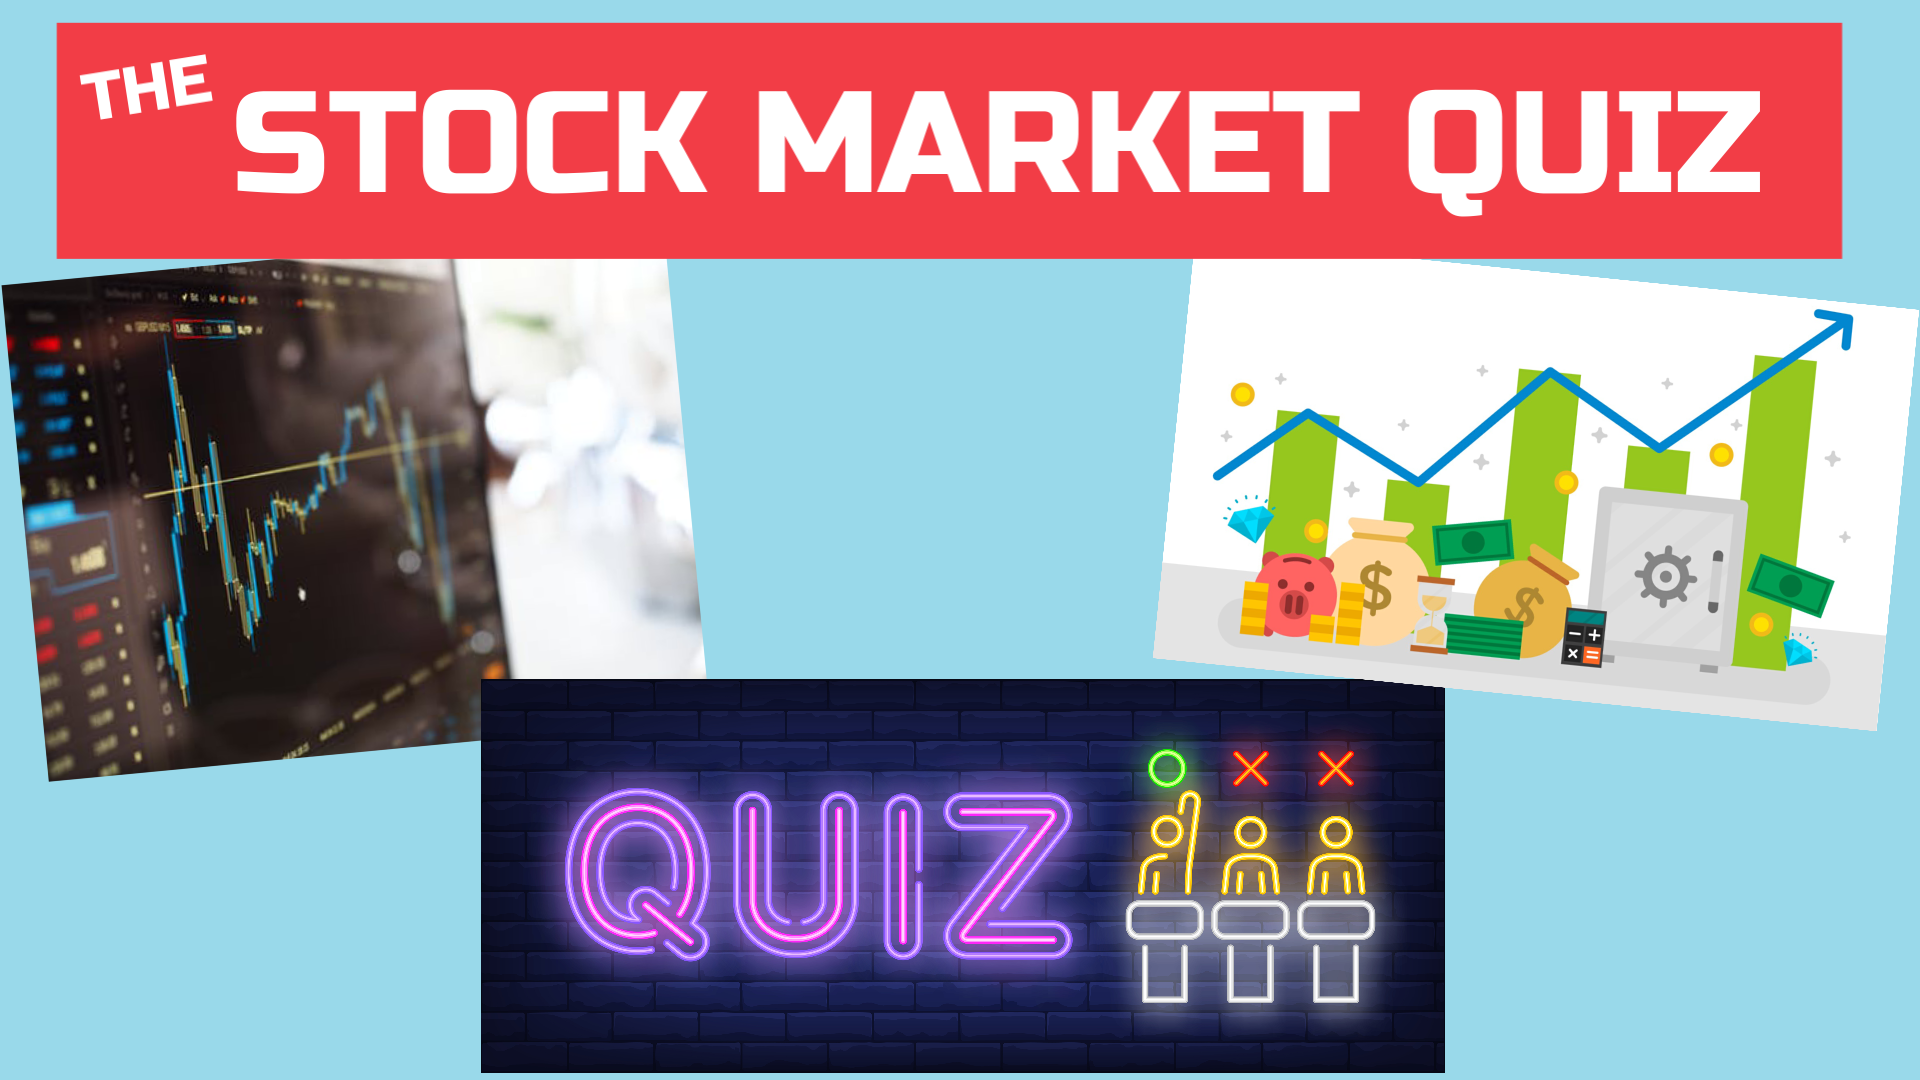 237 Quiz Stocks and the stock market